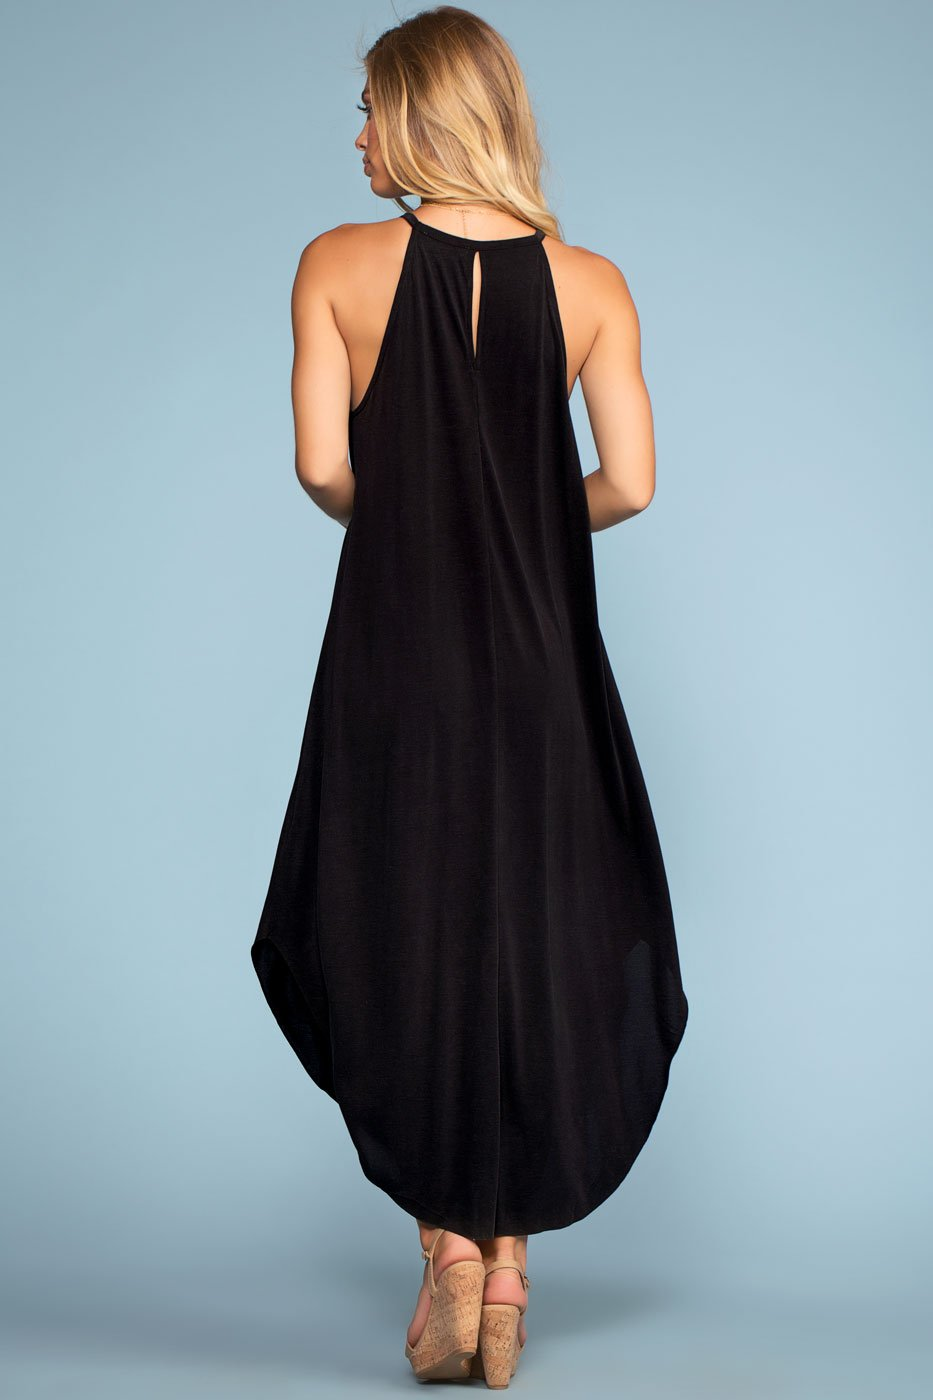 Dresses - Sandbar Maxi Dress - Black